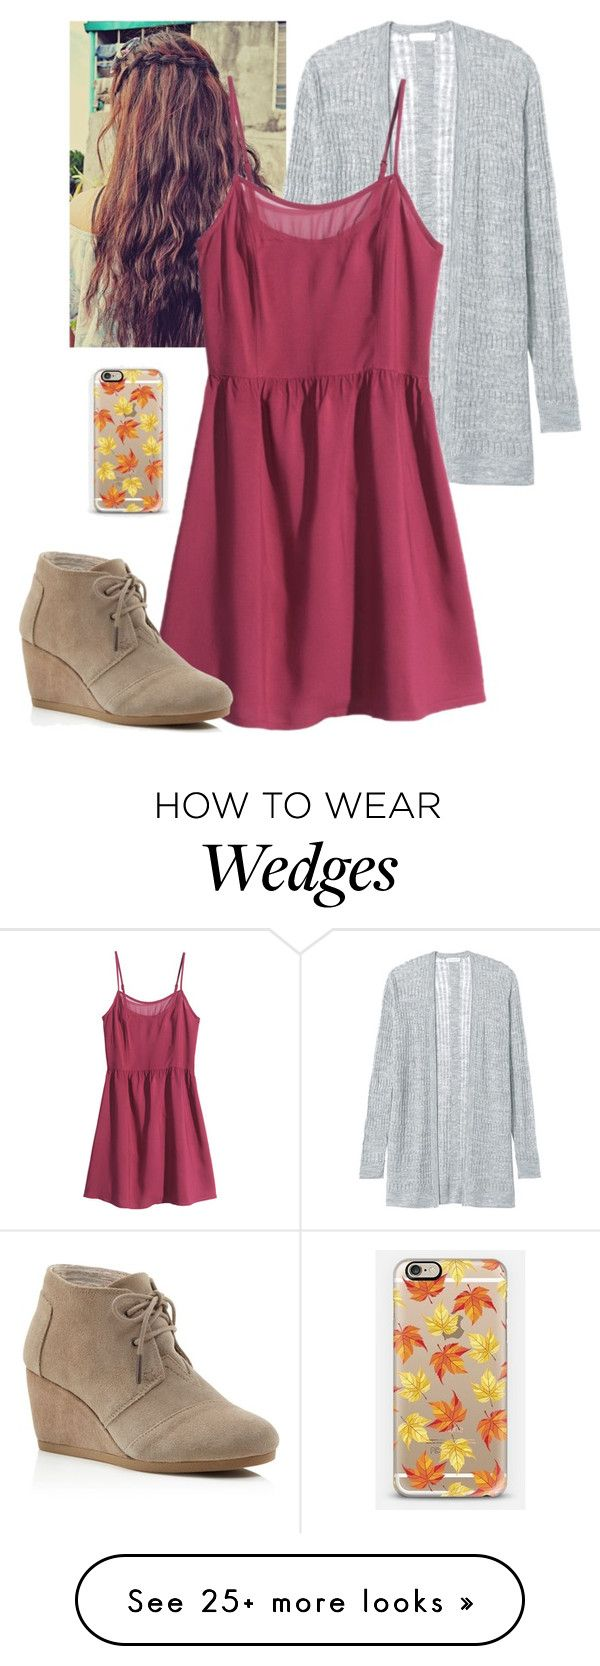 """""""Infinity ∞"""" by kayleemullins on Polyvore featuring Rebecca Taylor, H&M, TOMS and Casetify"""